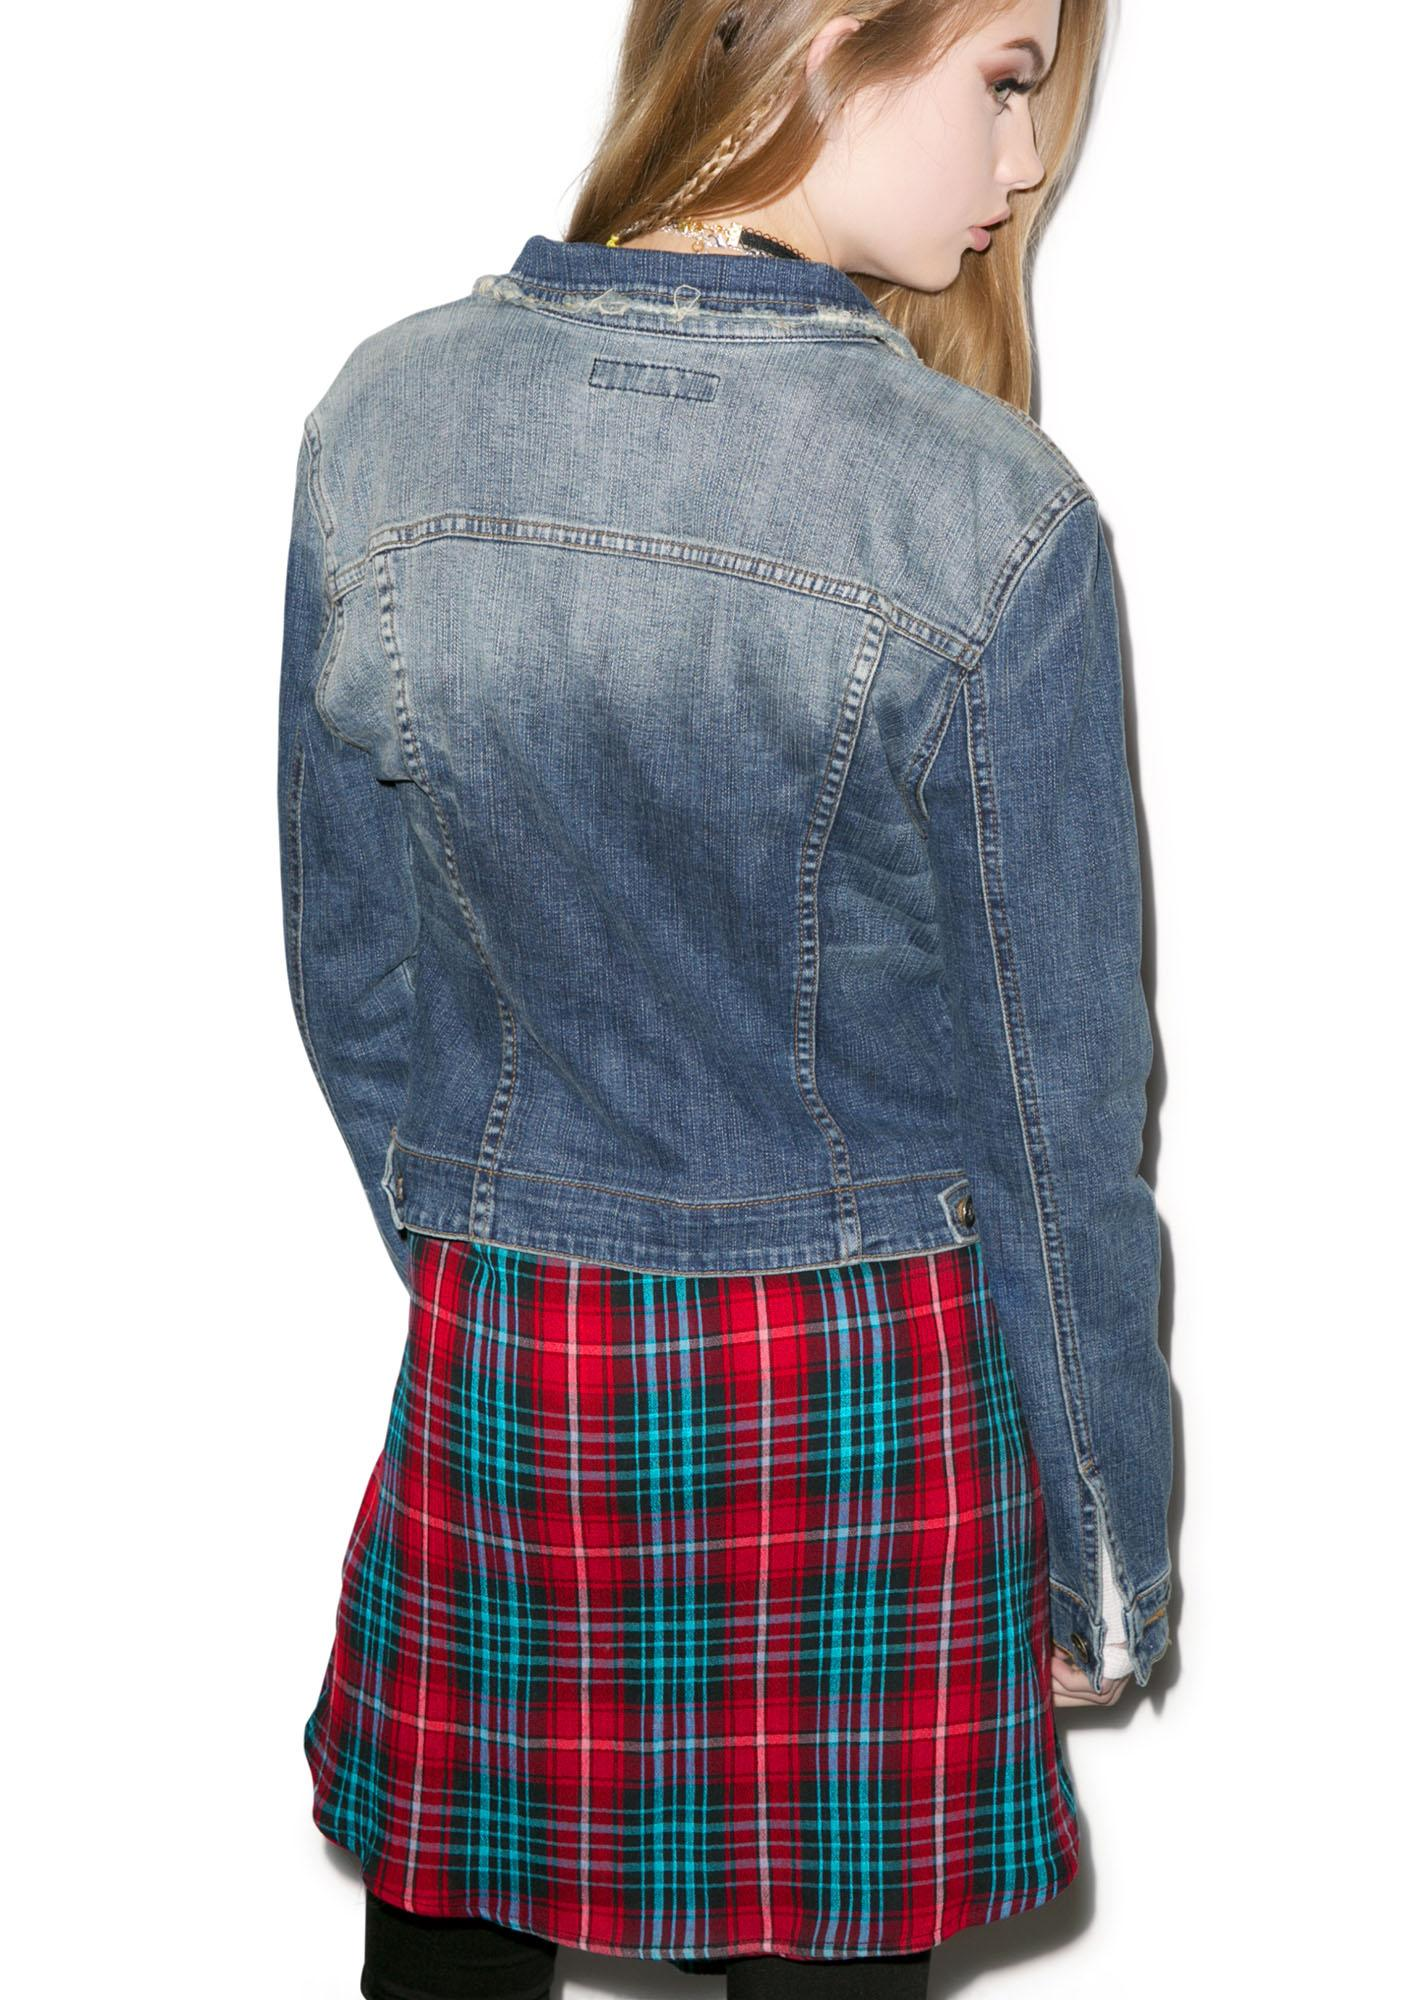 JET by John Eshaya Plaid Tie Jean Jacket